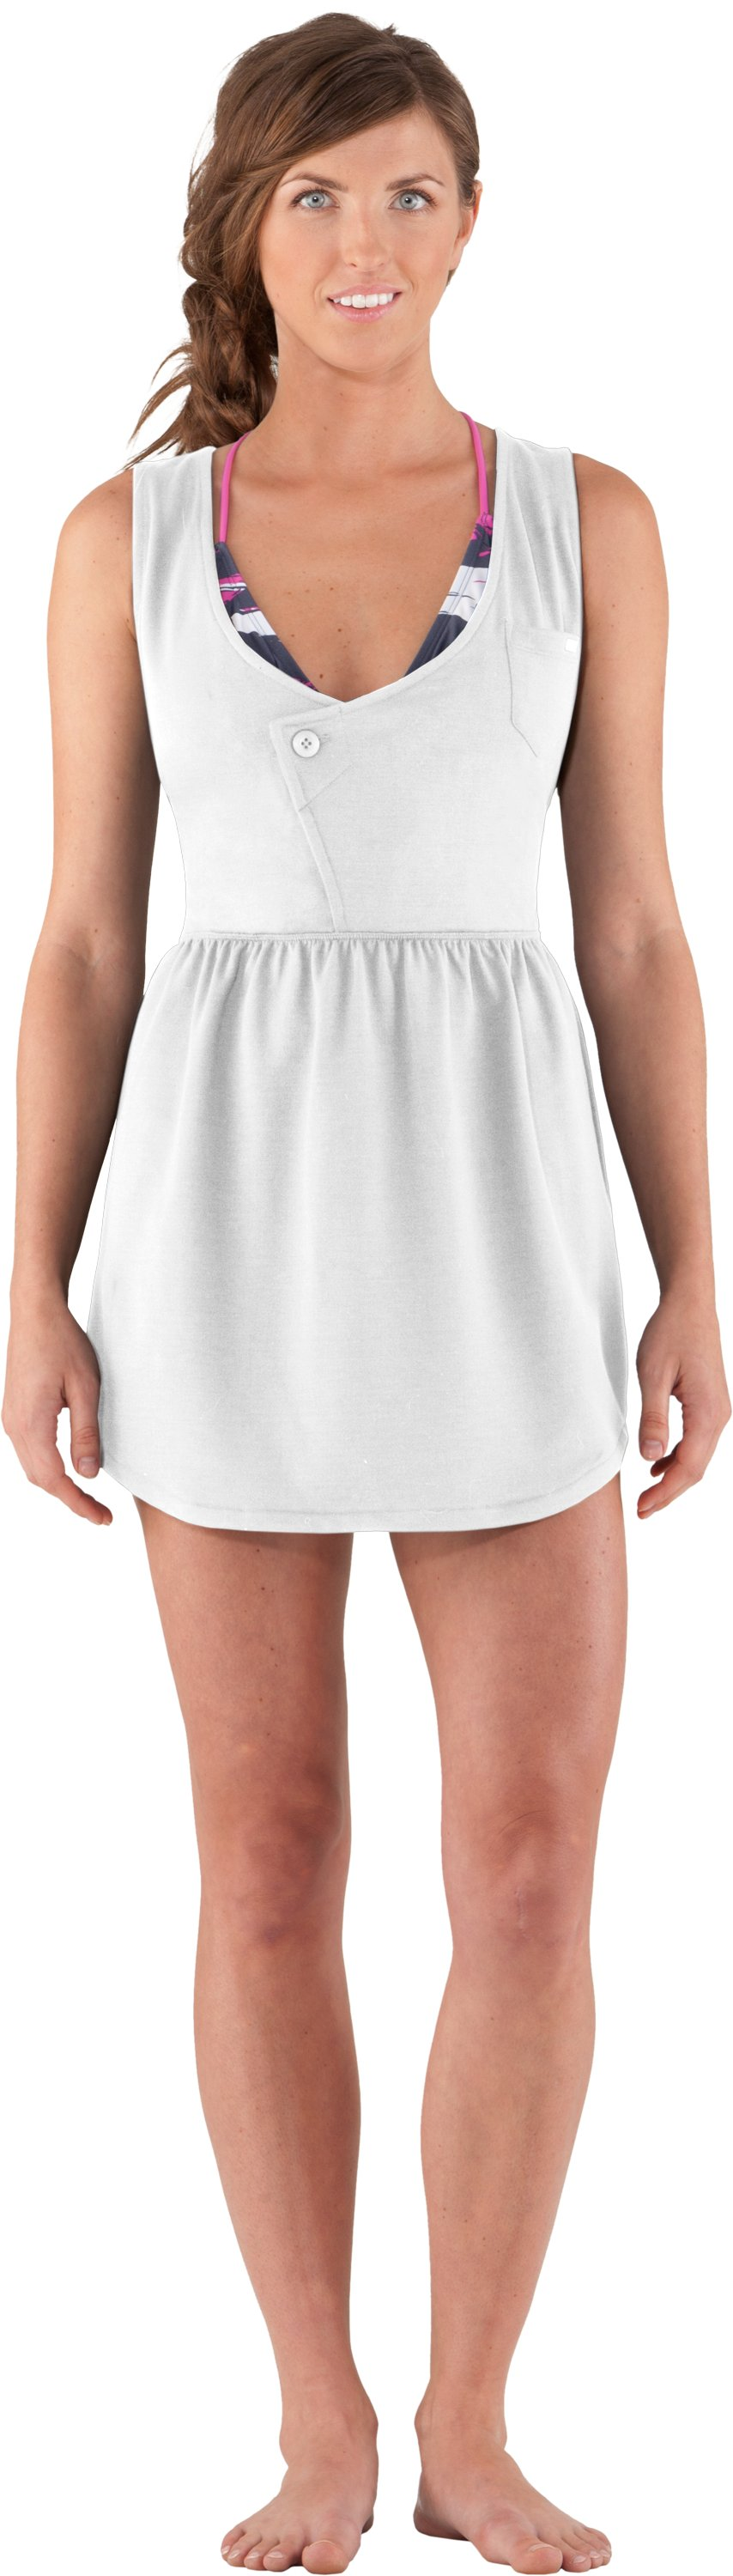 Women's Ridgely Cover-Up, White, Front